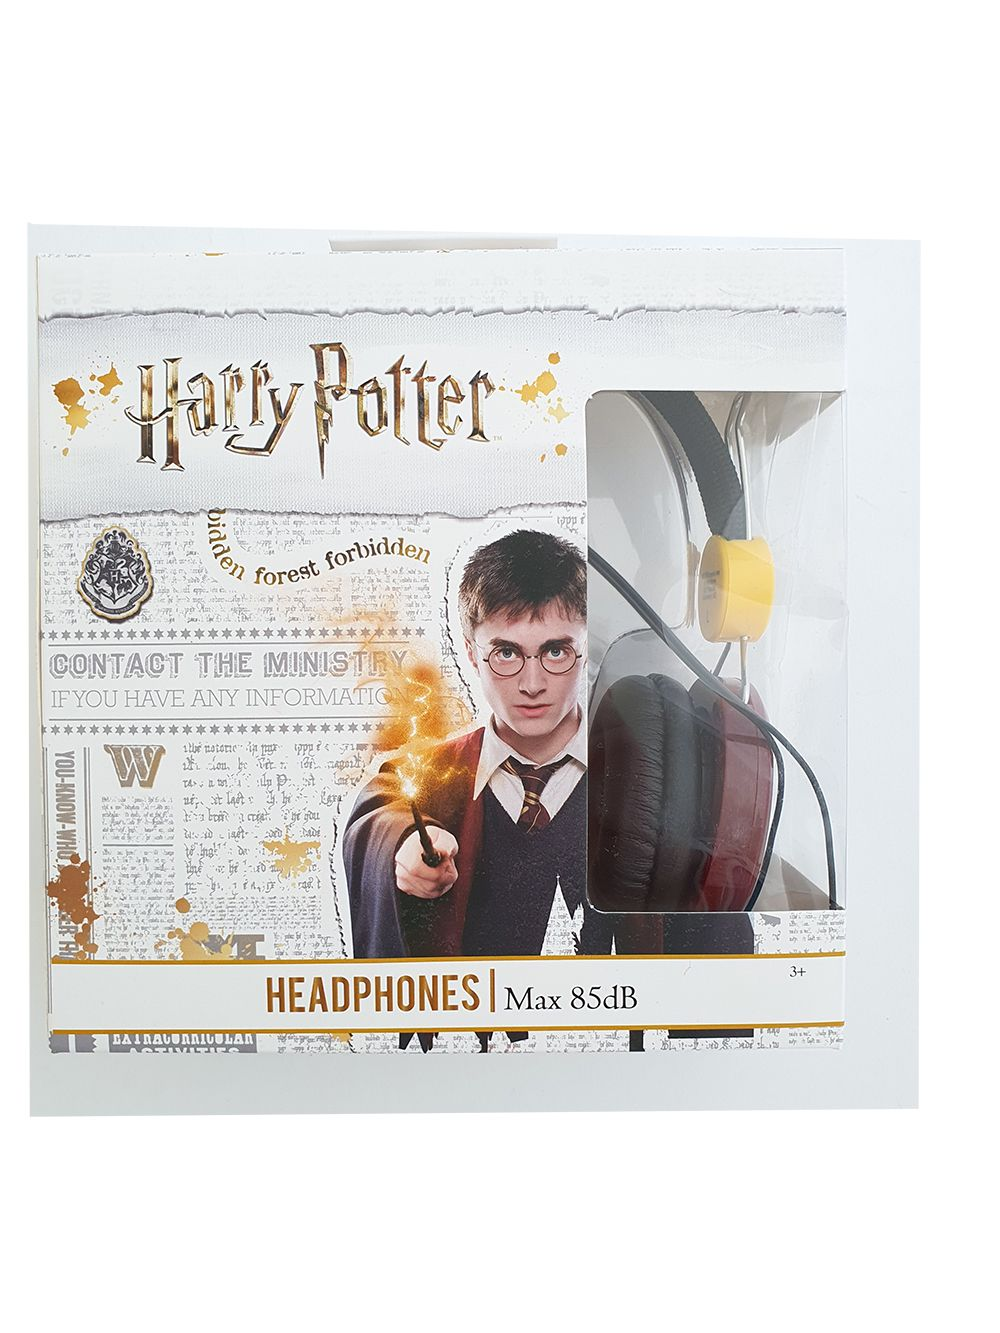 Harry Potter accessories headphones